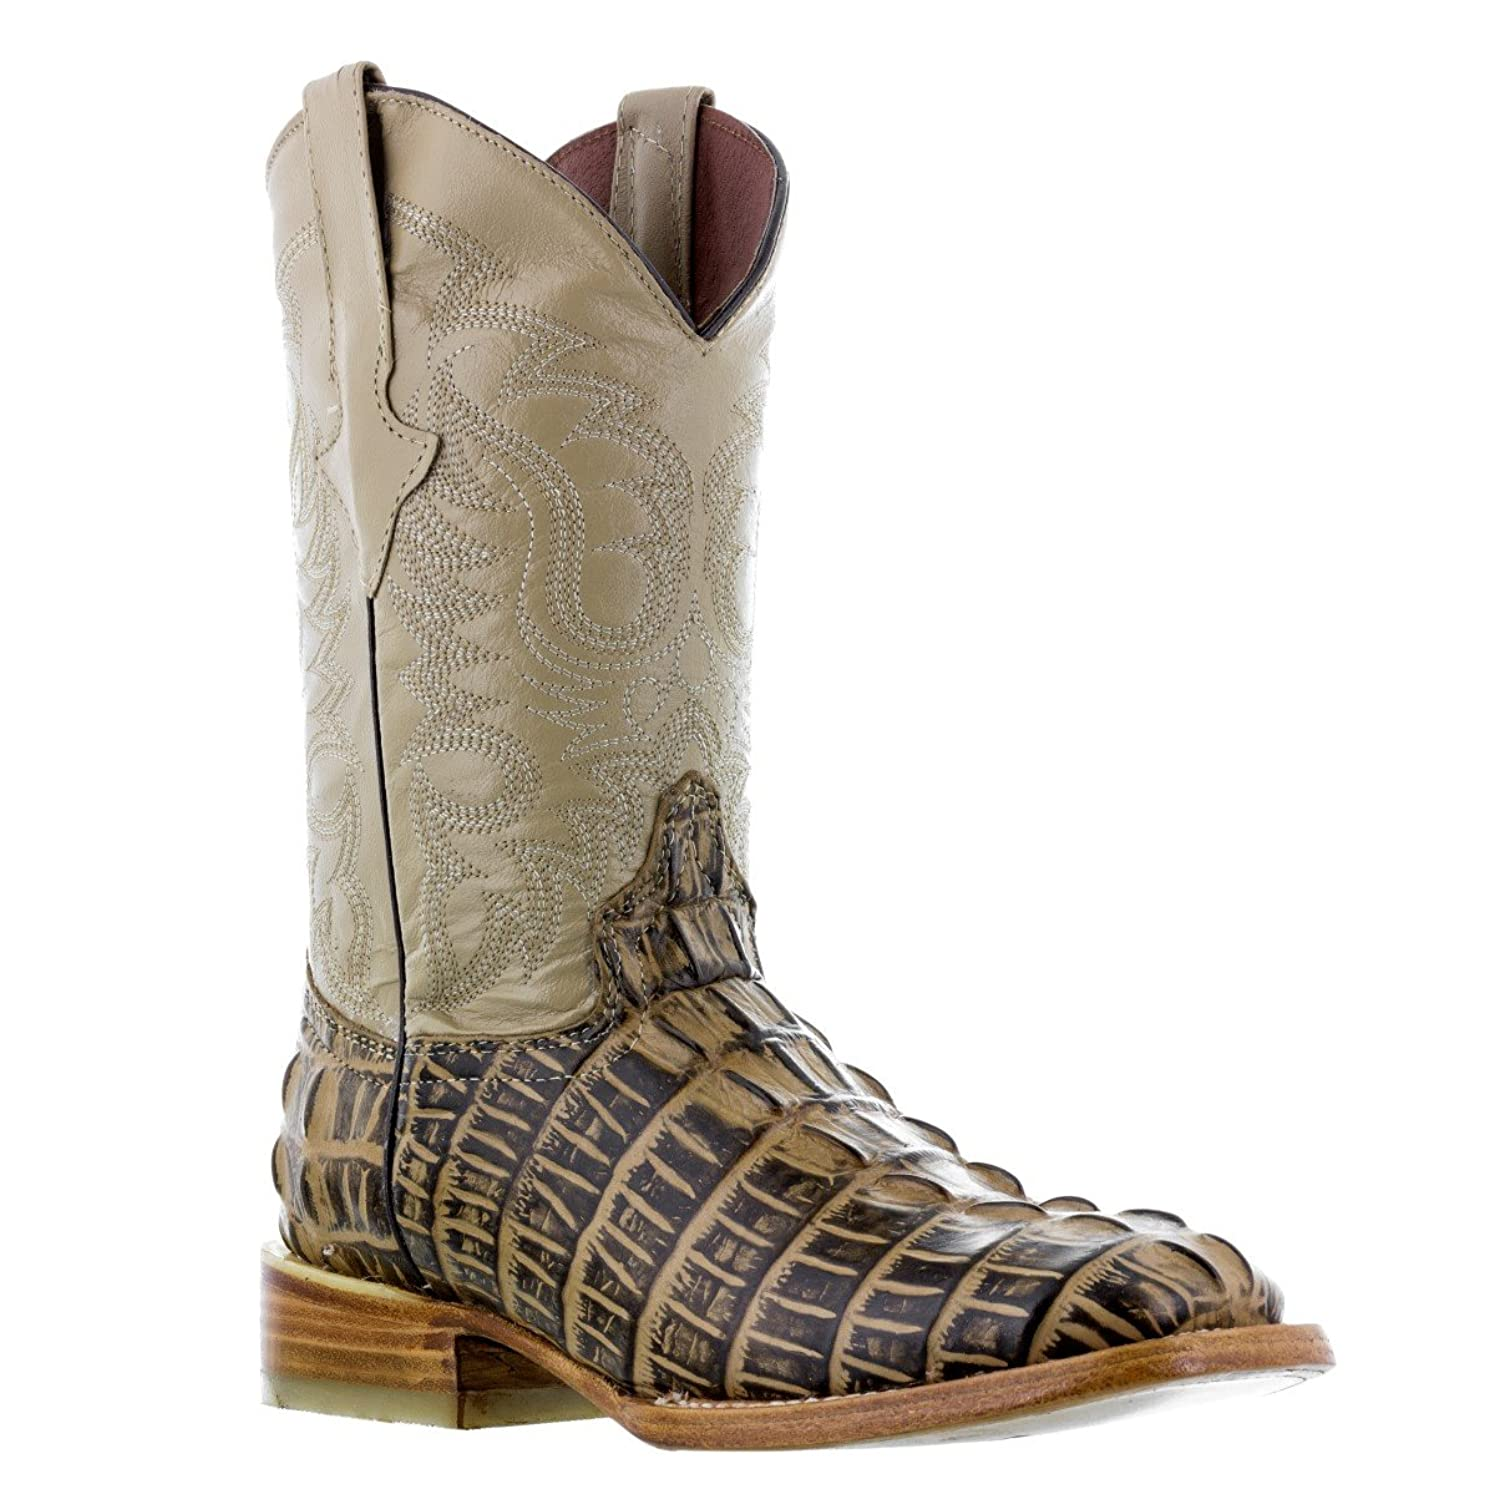 Texas Legacy - Mens Rustic Sand Crocodile Tail Print Leather Cowboy Boots Square